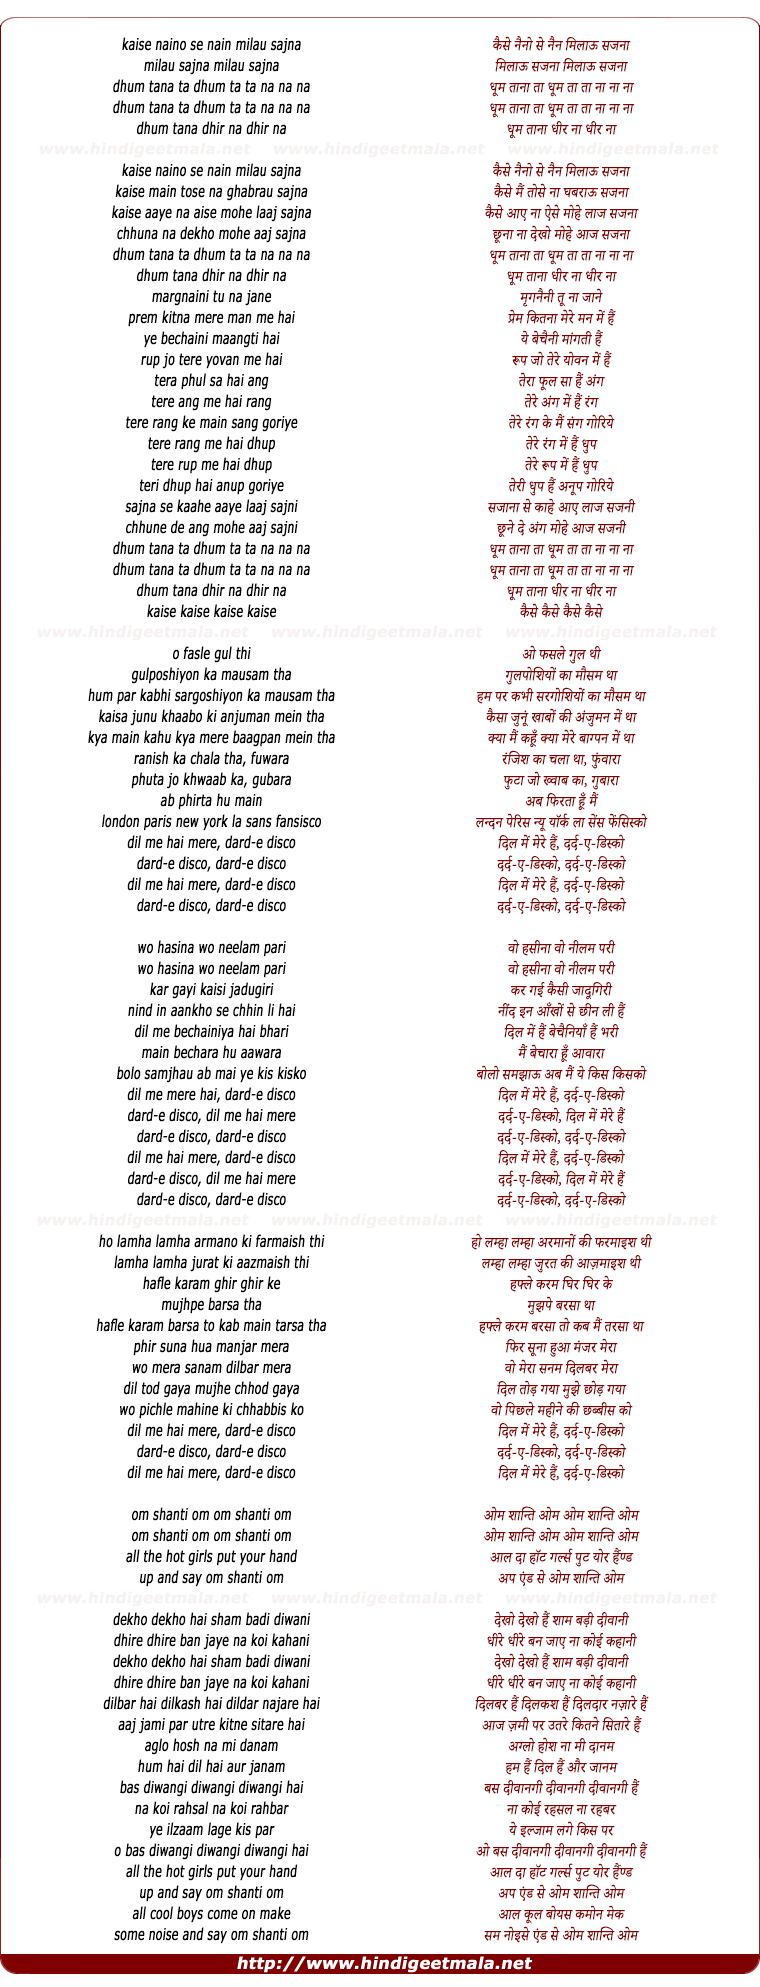 lyrics of song Om Shanti Om (Remix)